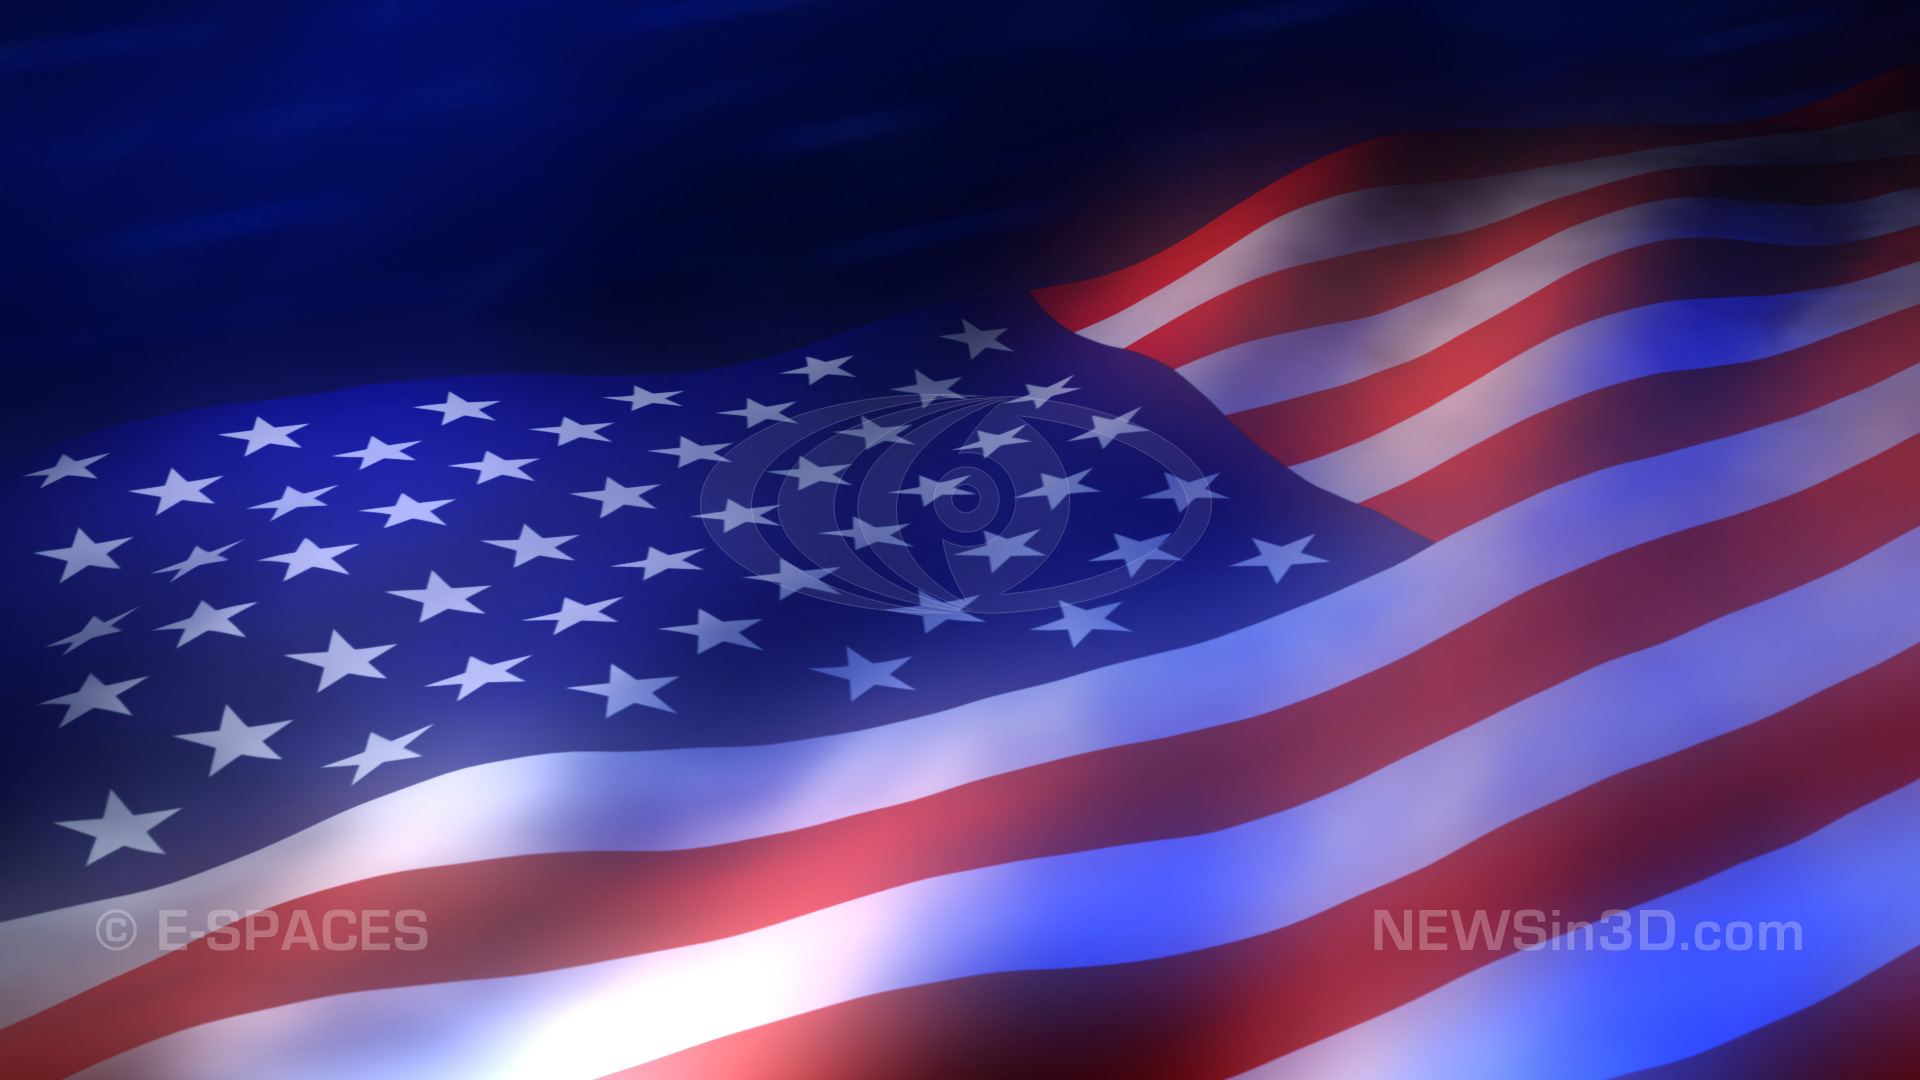 active desktop wallpaper american flag 1920x1080